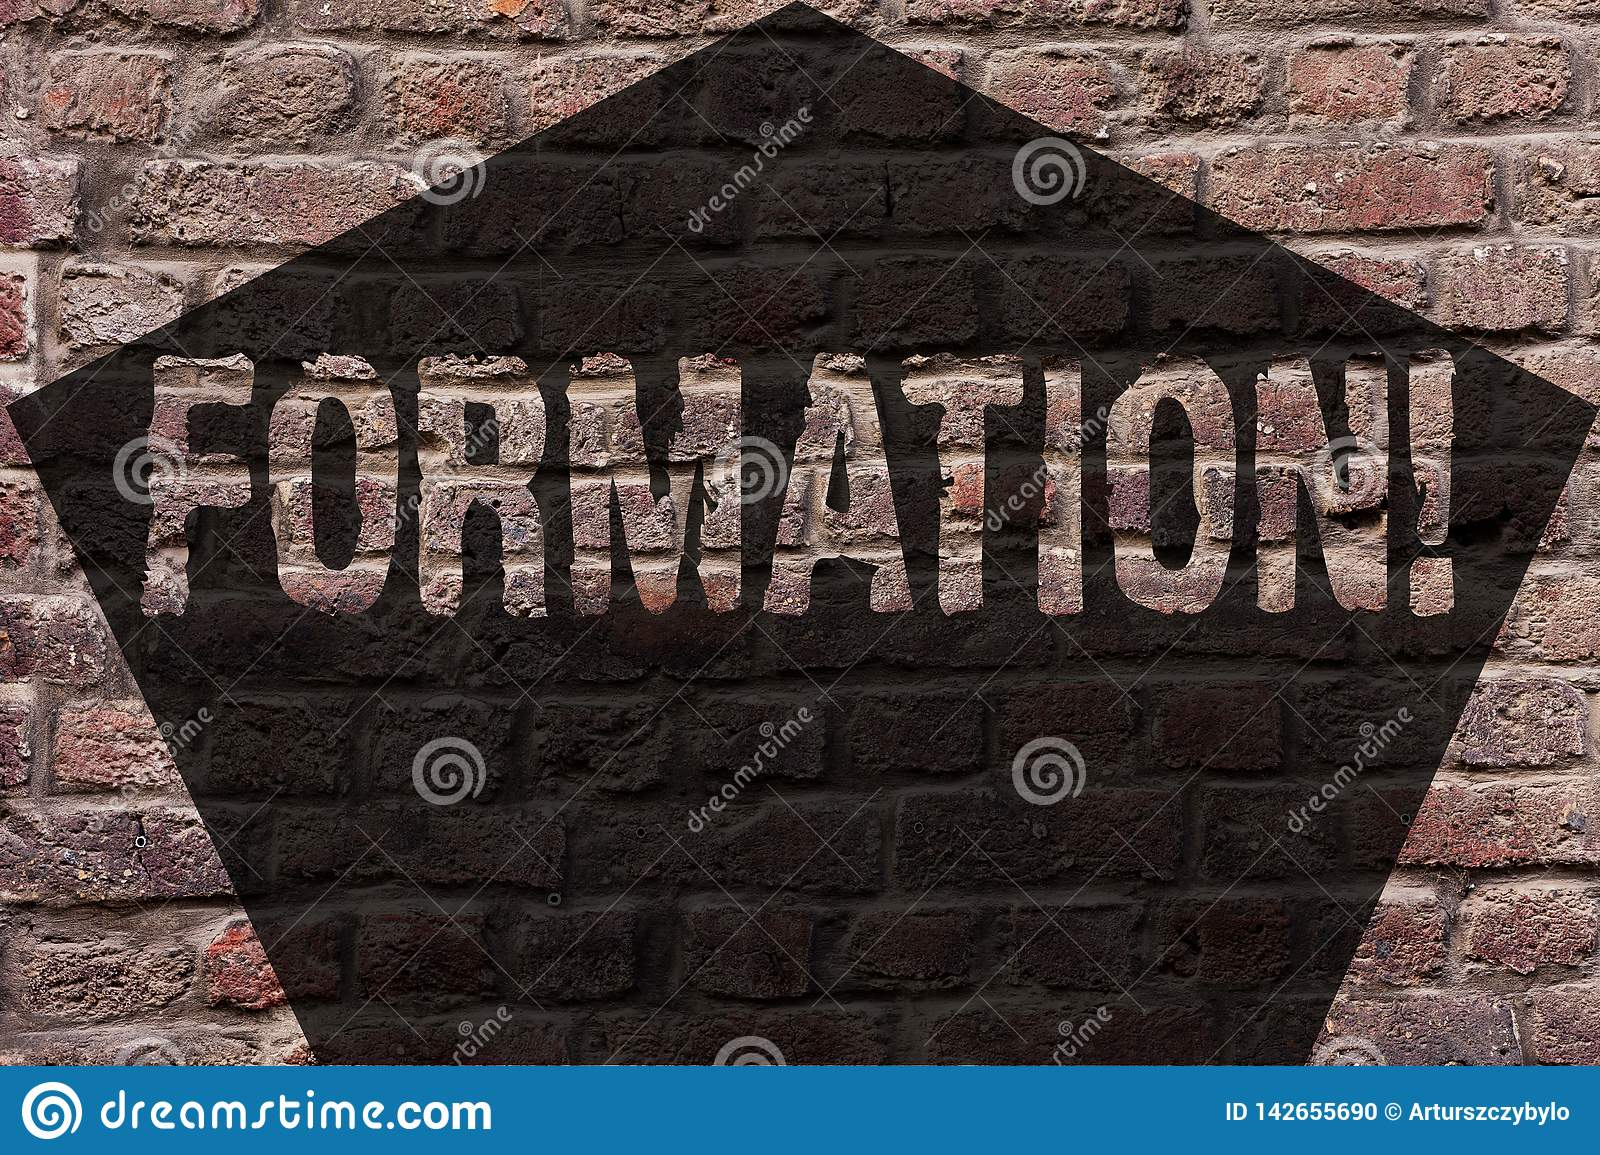 Handwriting Text Formation Concept Meaning Body Of Rocks Particular Troops Parts Disposition Forming Process Brick Wall Stock Photo Image Of Canyon Ecology 142655690